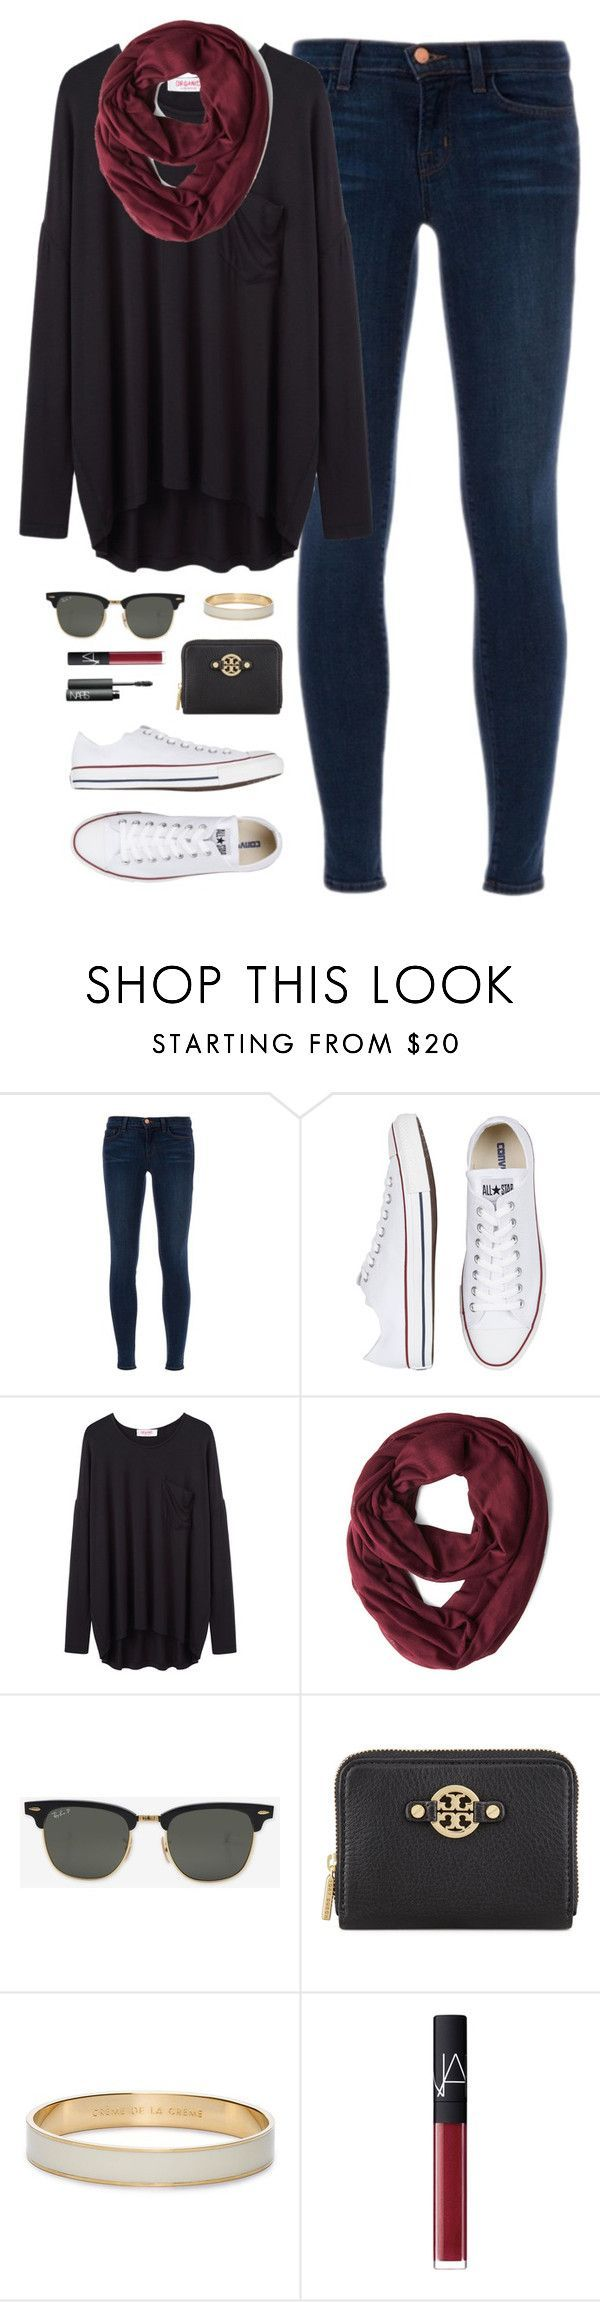 cold day, dark clothes by classically-preppy ❤ liked on Polyvore featuring J Brand, Converse, Organic by John Patrick, Ray-Ban, Tory Burch, Kate Spade and NARS Cosmetics